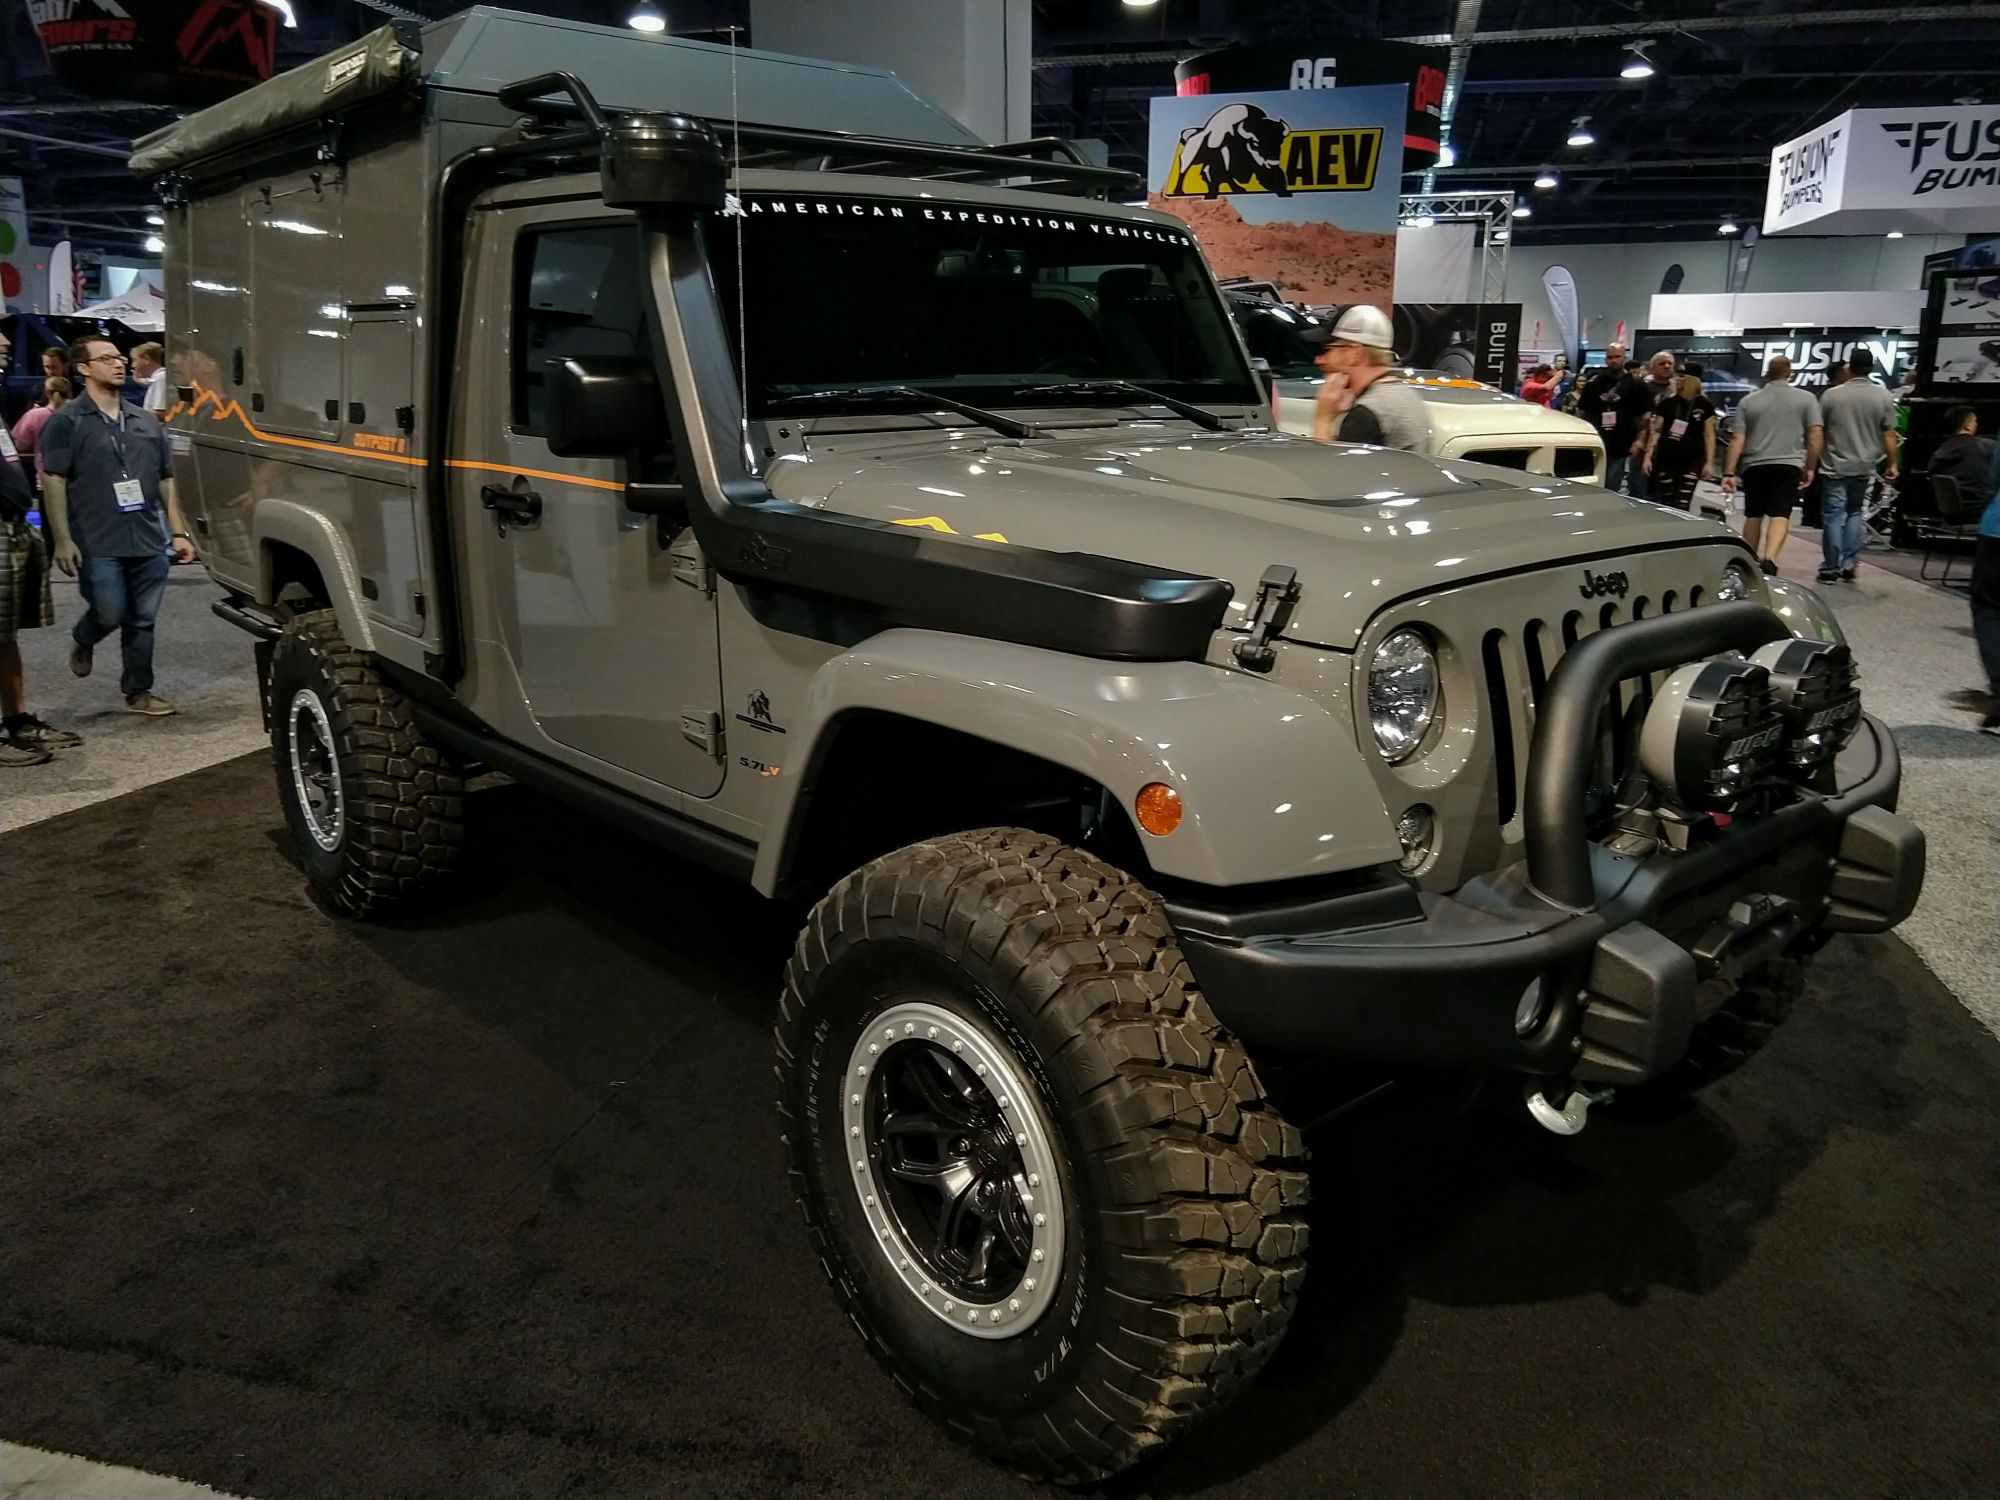 Preparing Your Vehicle For an Overlanding Experience